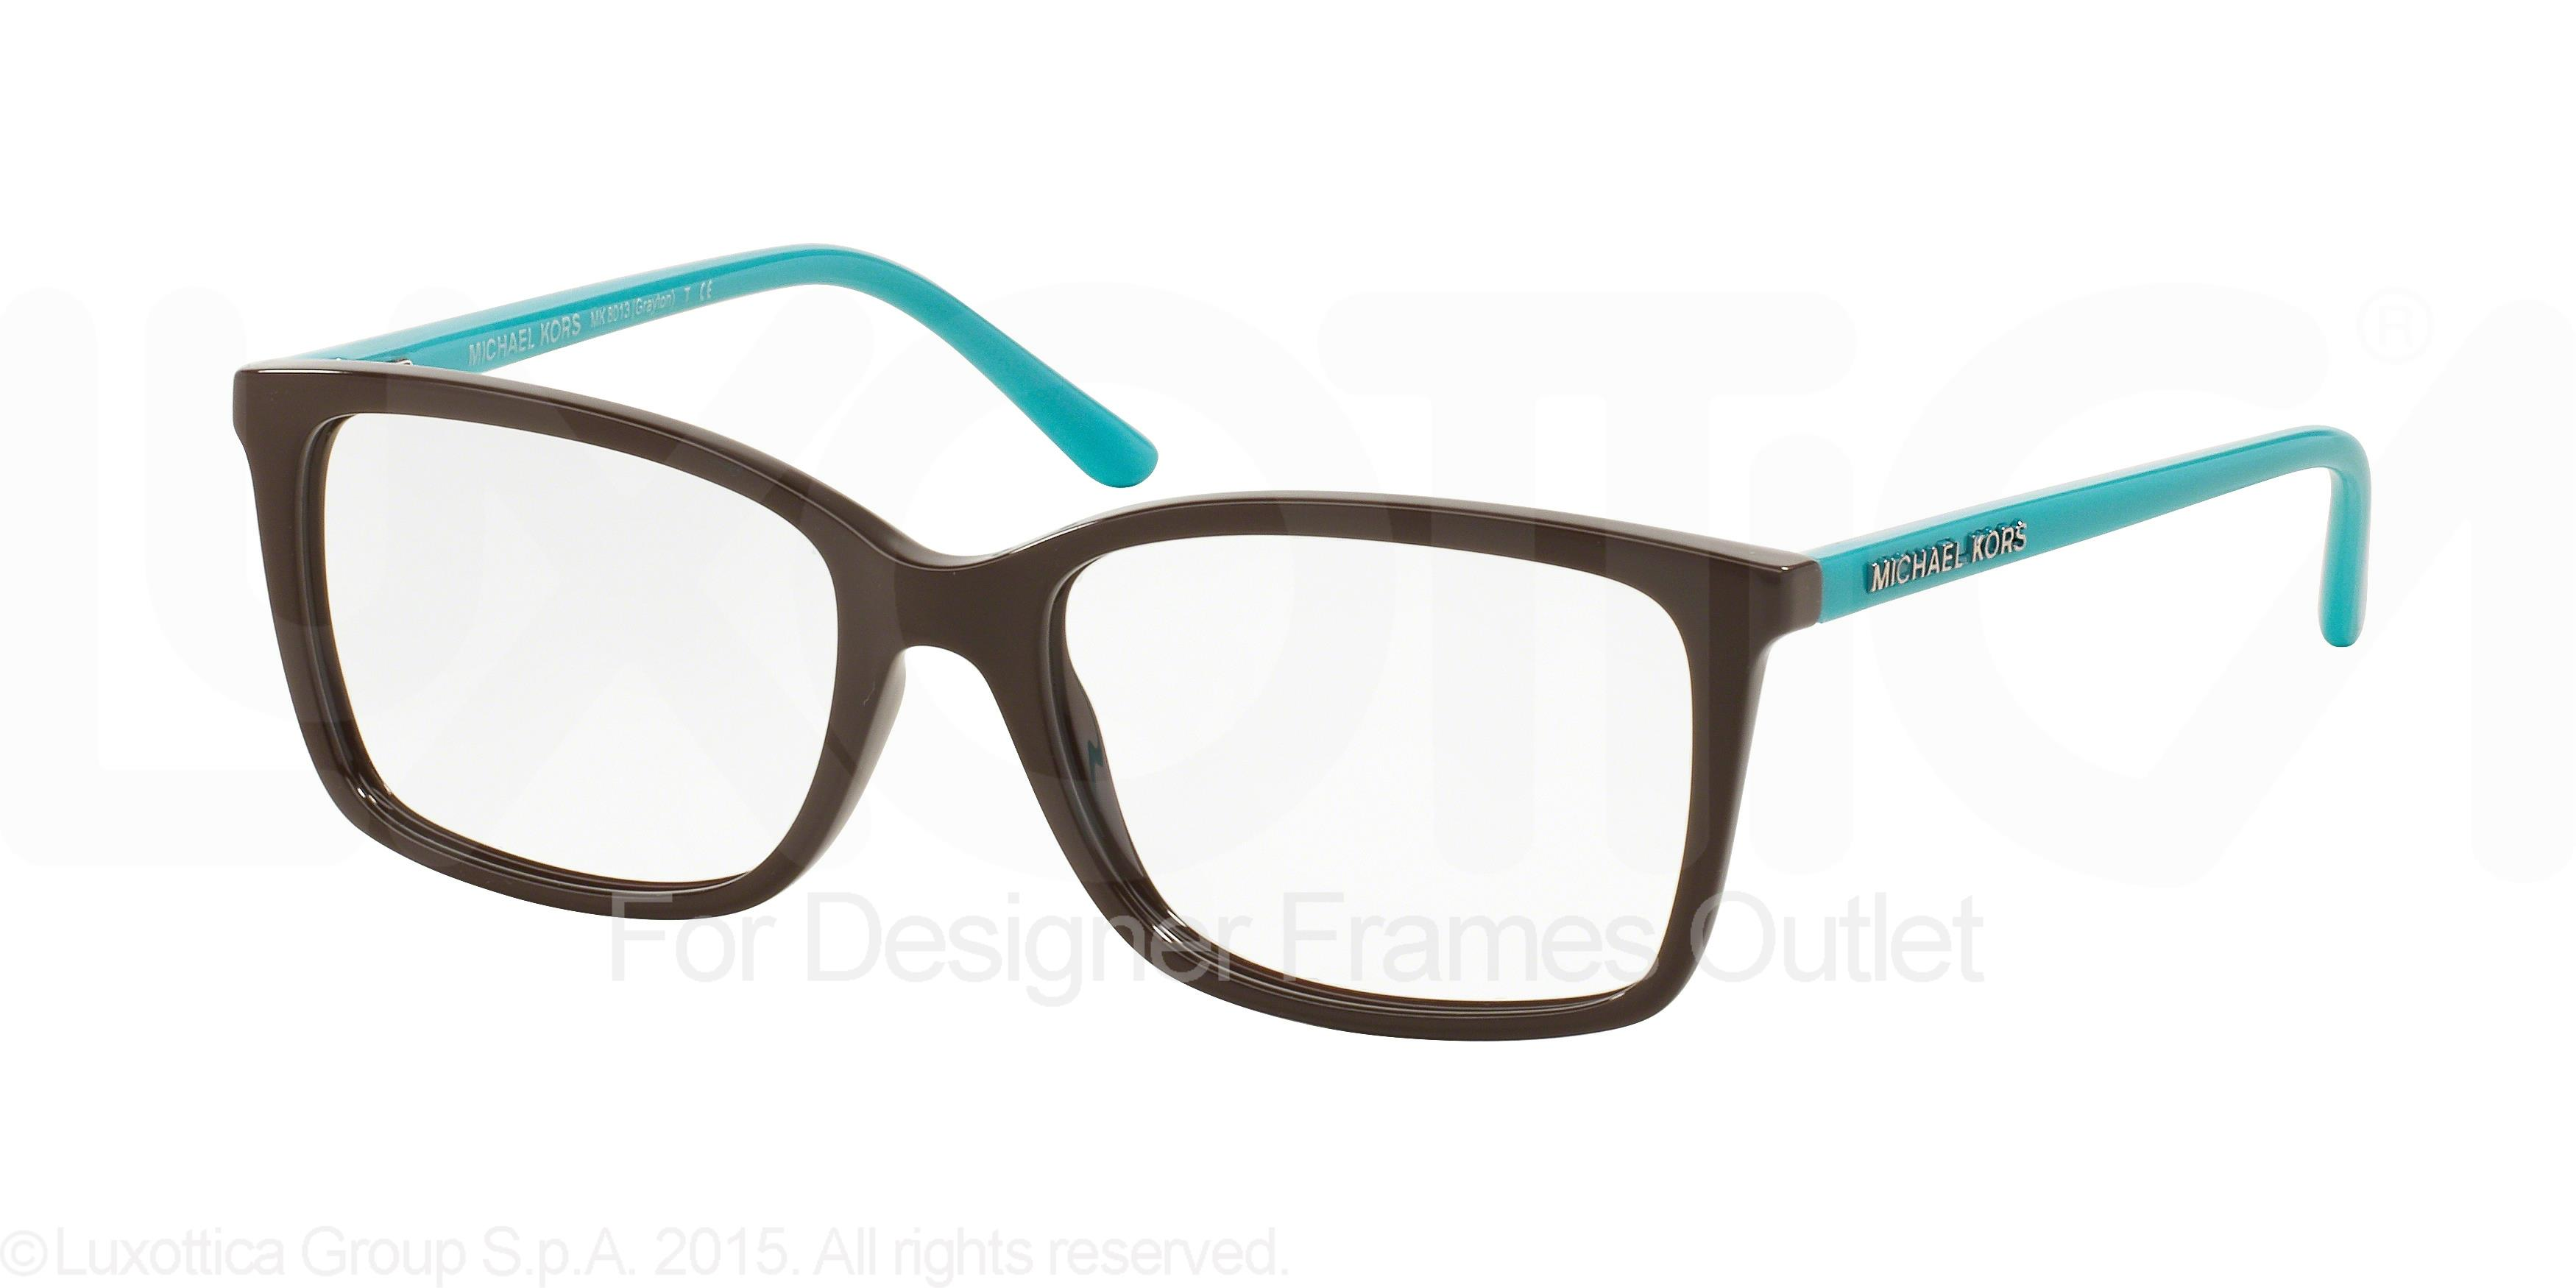 3058 Brown Turquoise